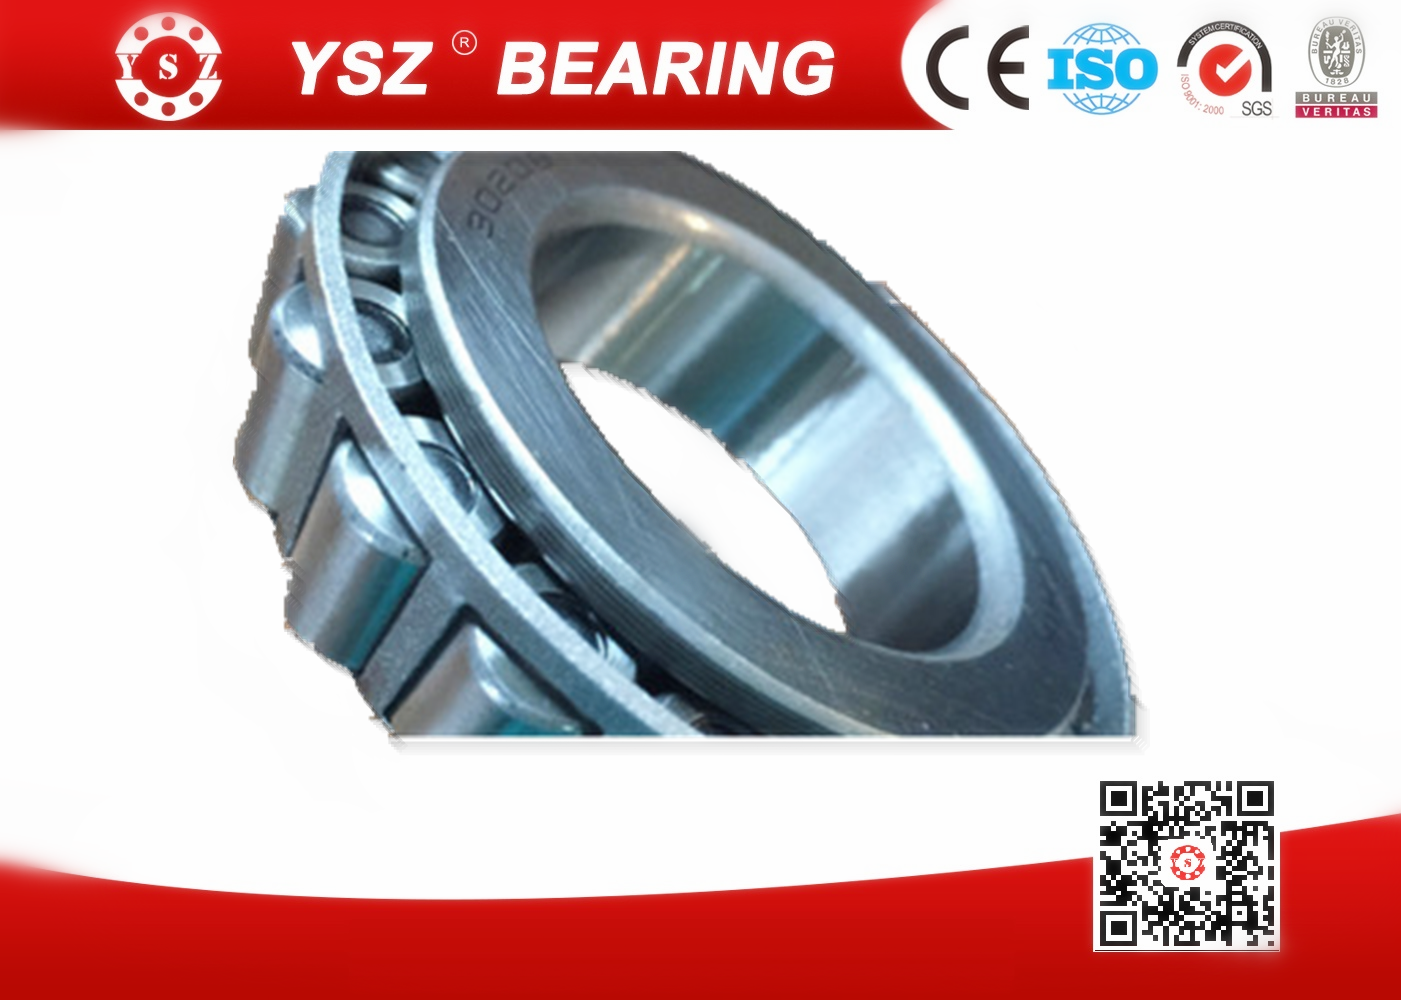 Gcr15 steel single row tapered roller bearings for heavy truck 32028 140*210*45 mm